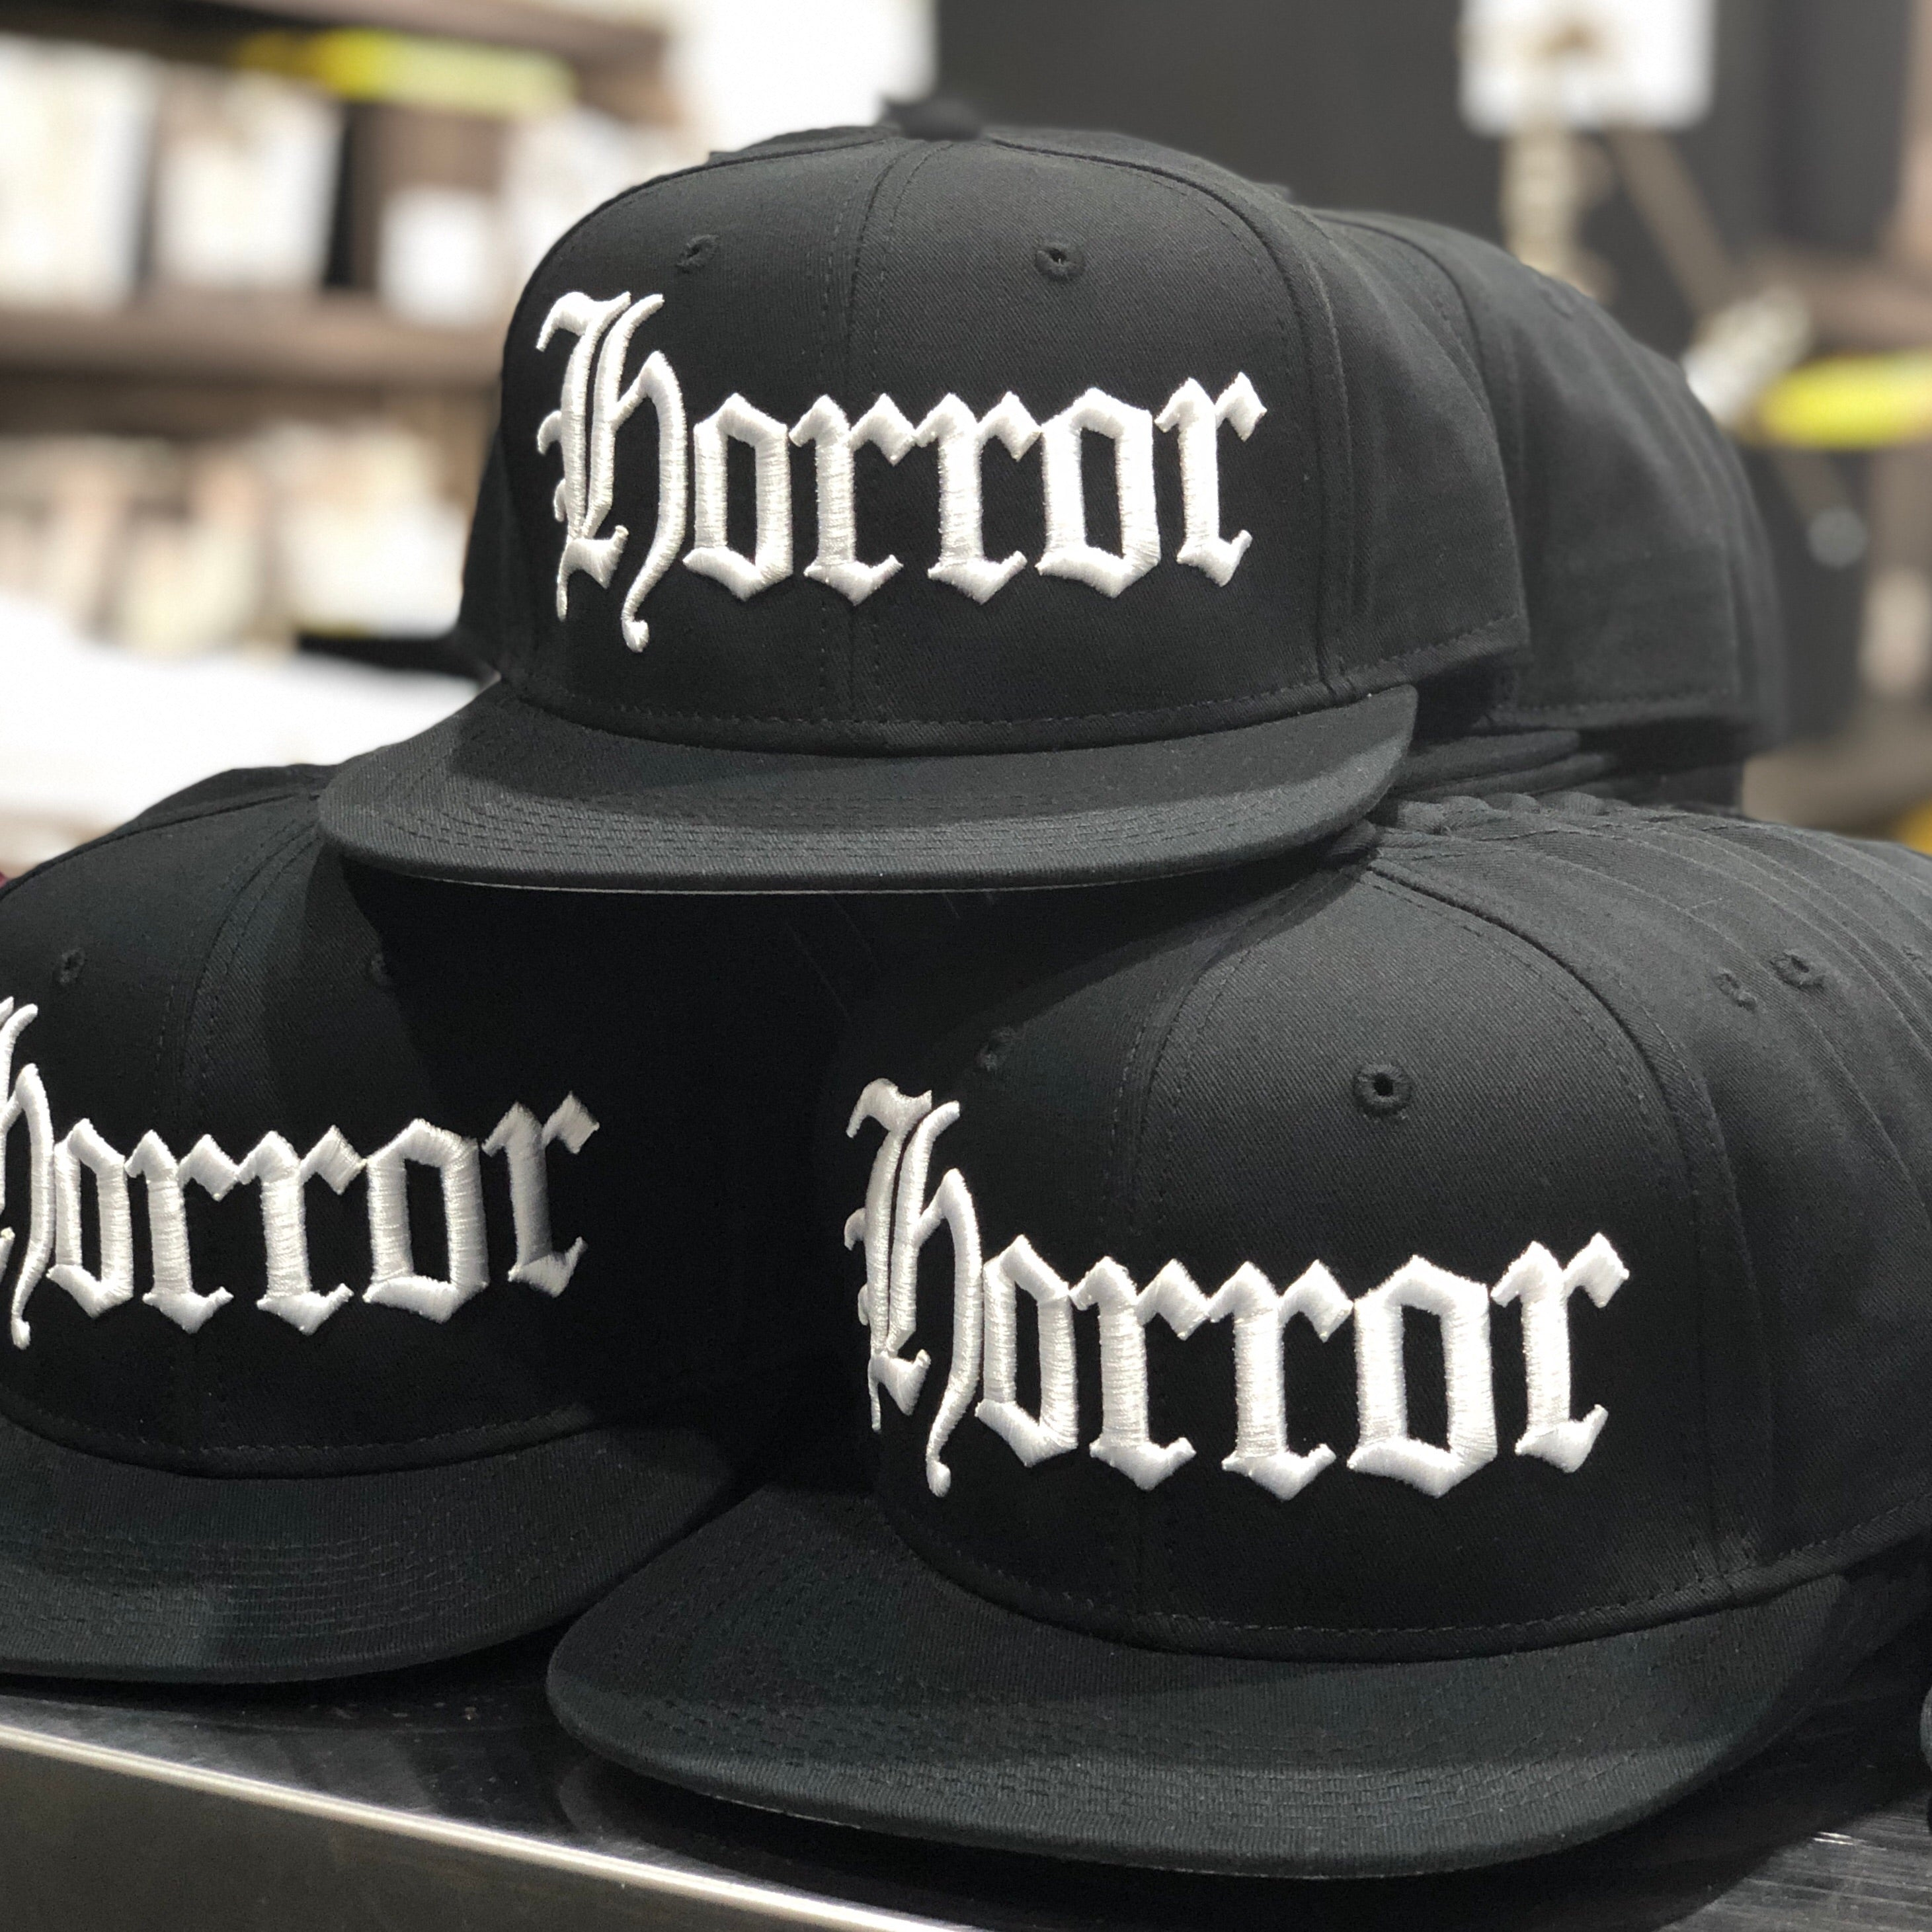 HORROR - White/Black - Hat